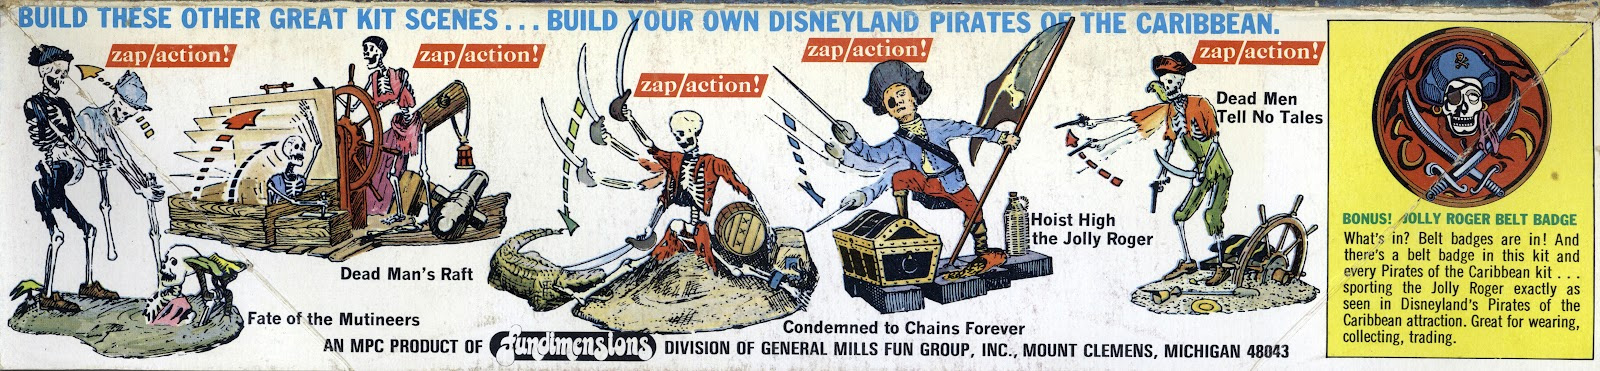 Jolly Roger Series Dismay Be the End Model Kit by Lindberg - Click Image to Close